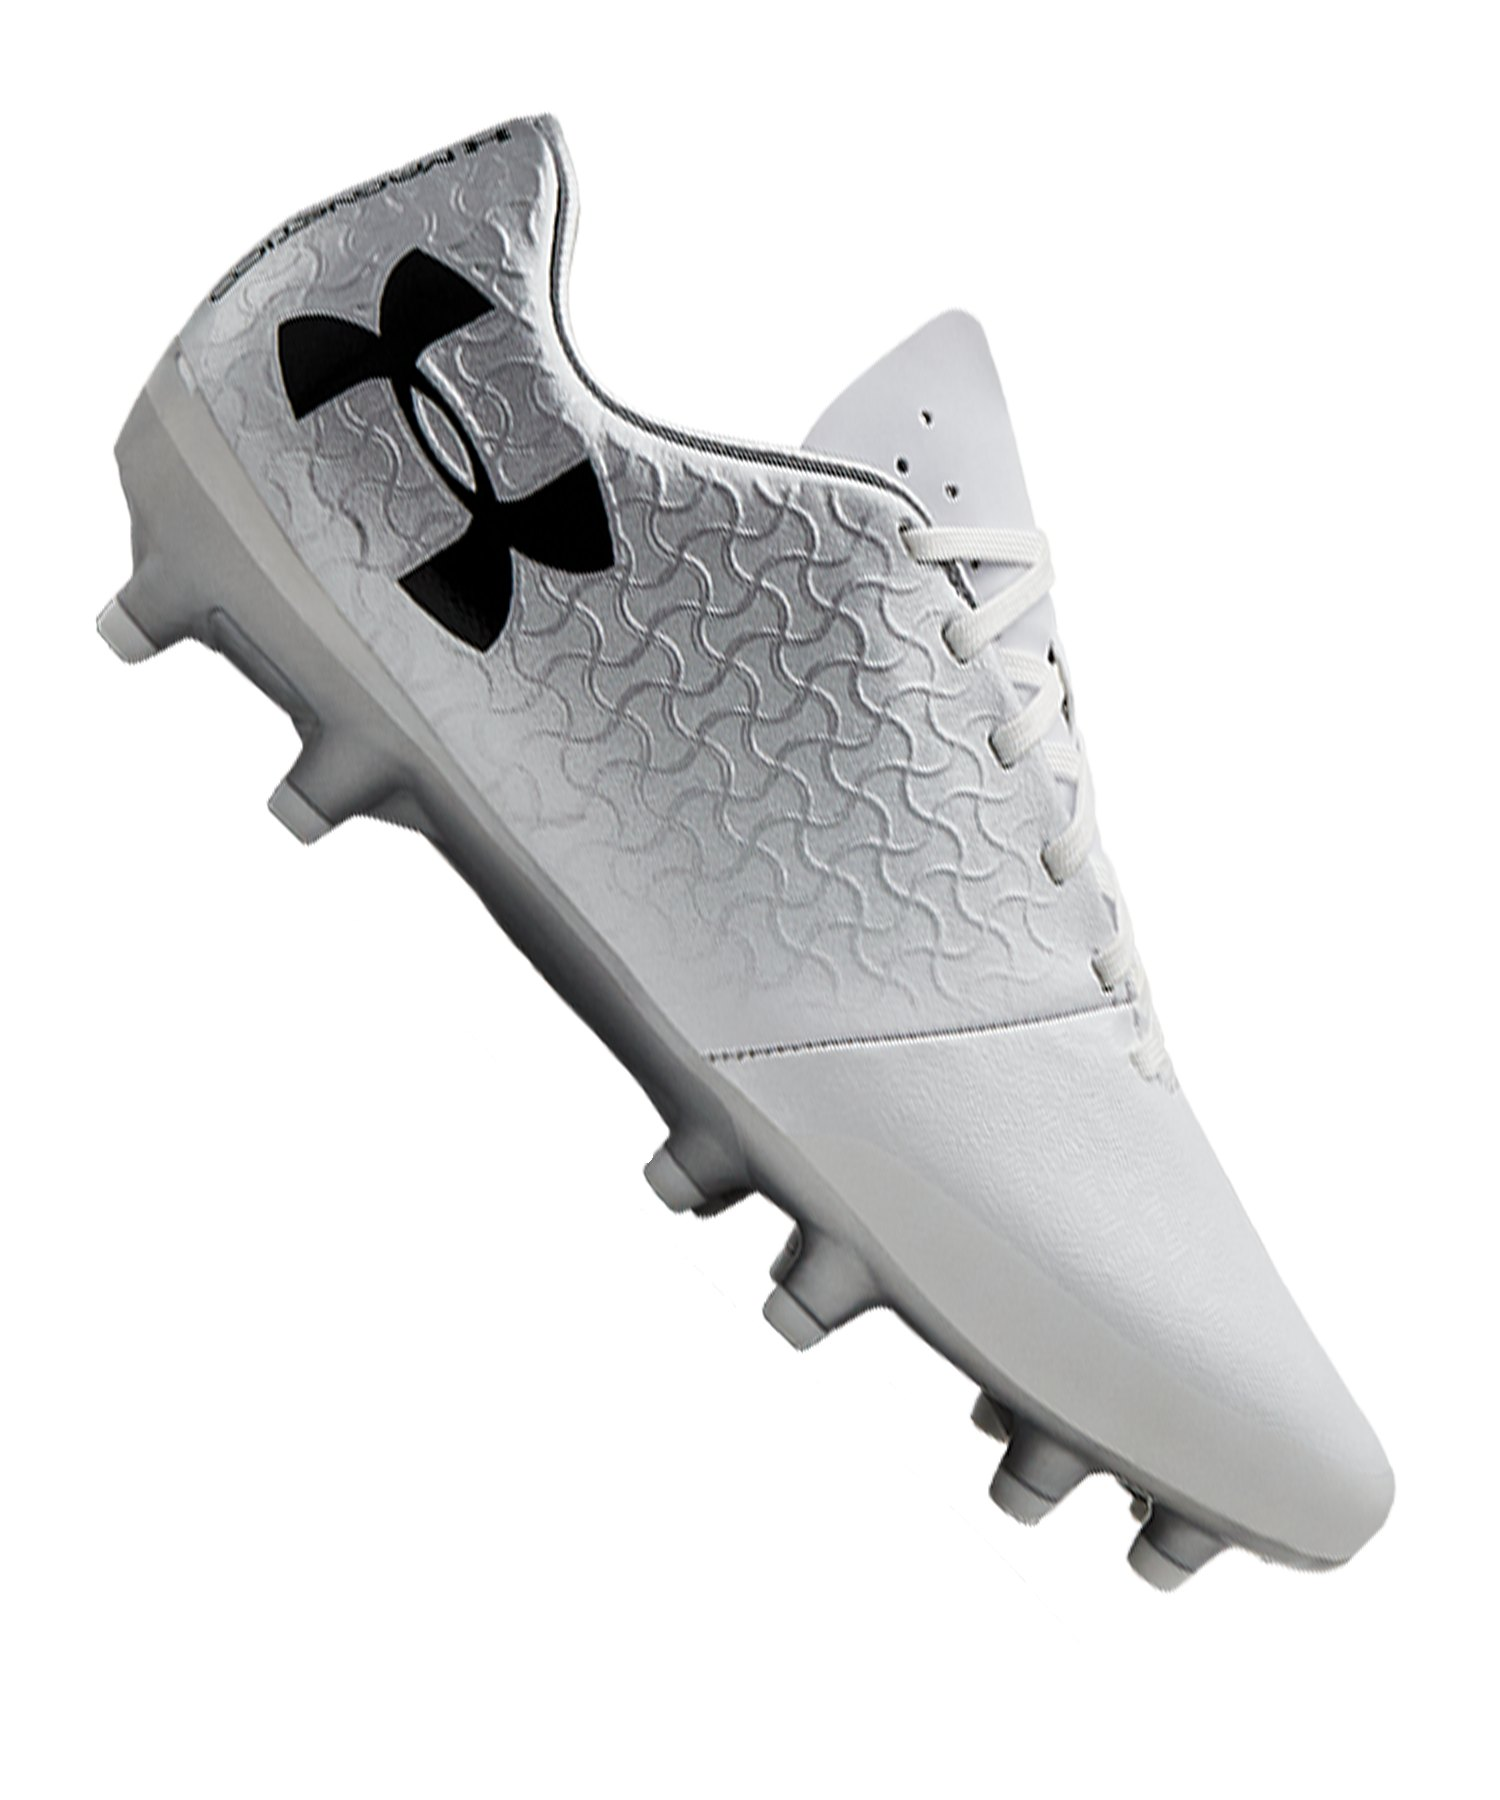 Under Armour Magnetico Select FG Kids Weiss F100 - Weiss